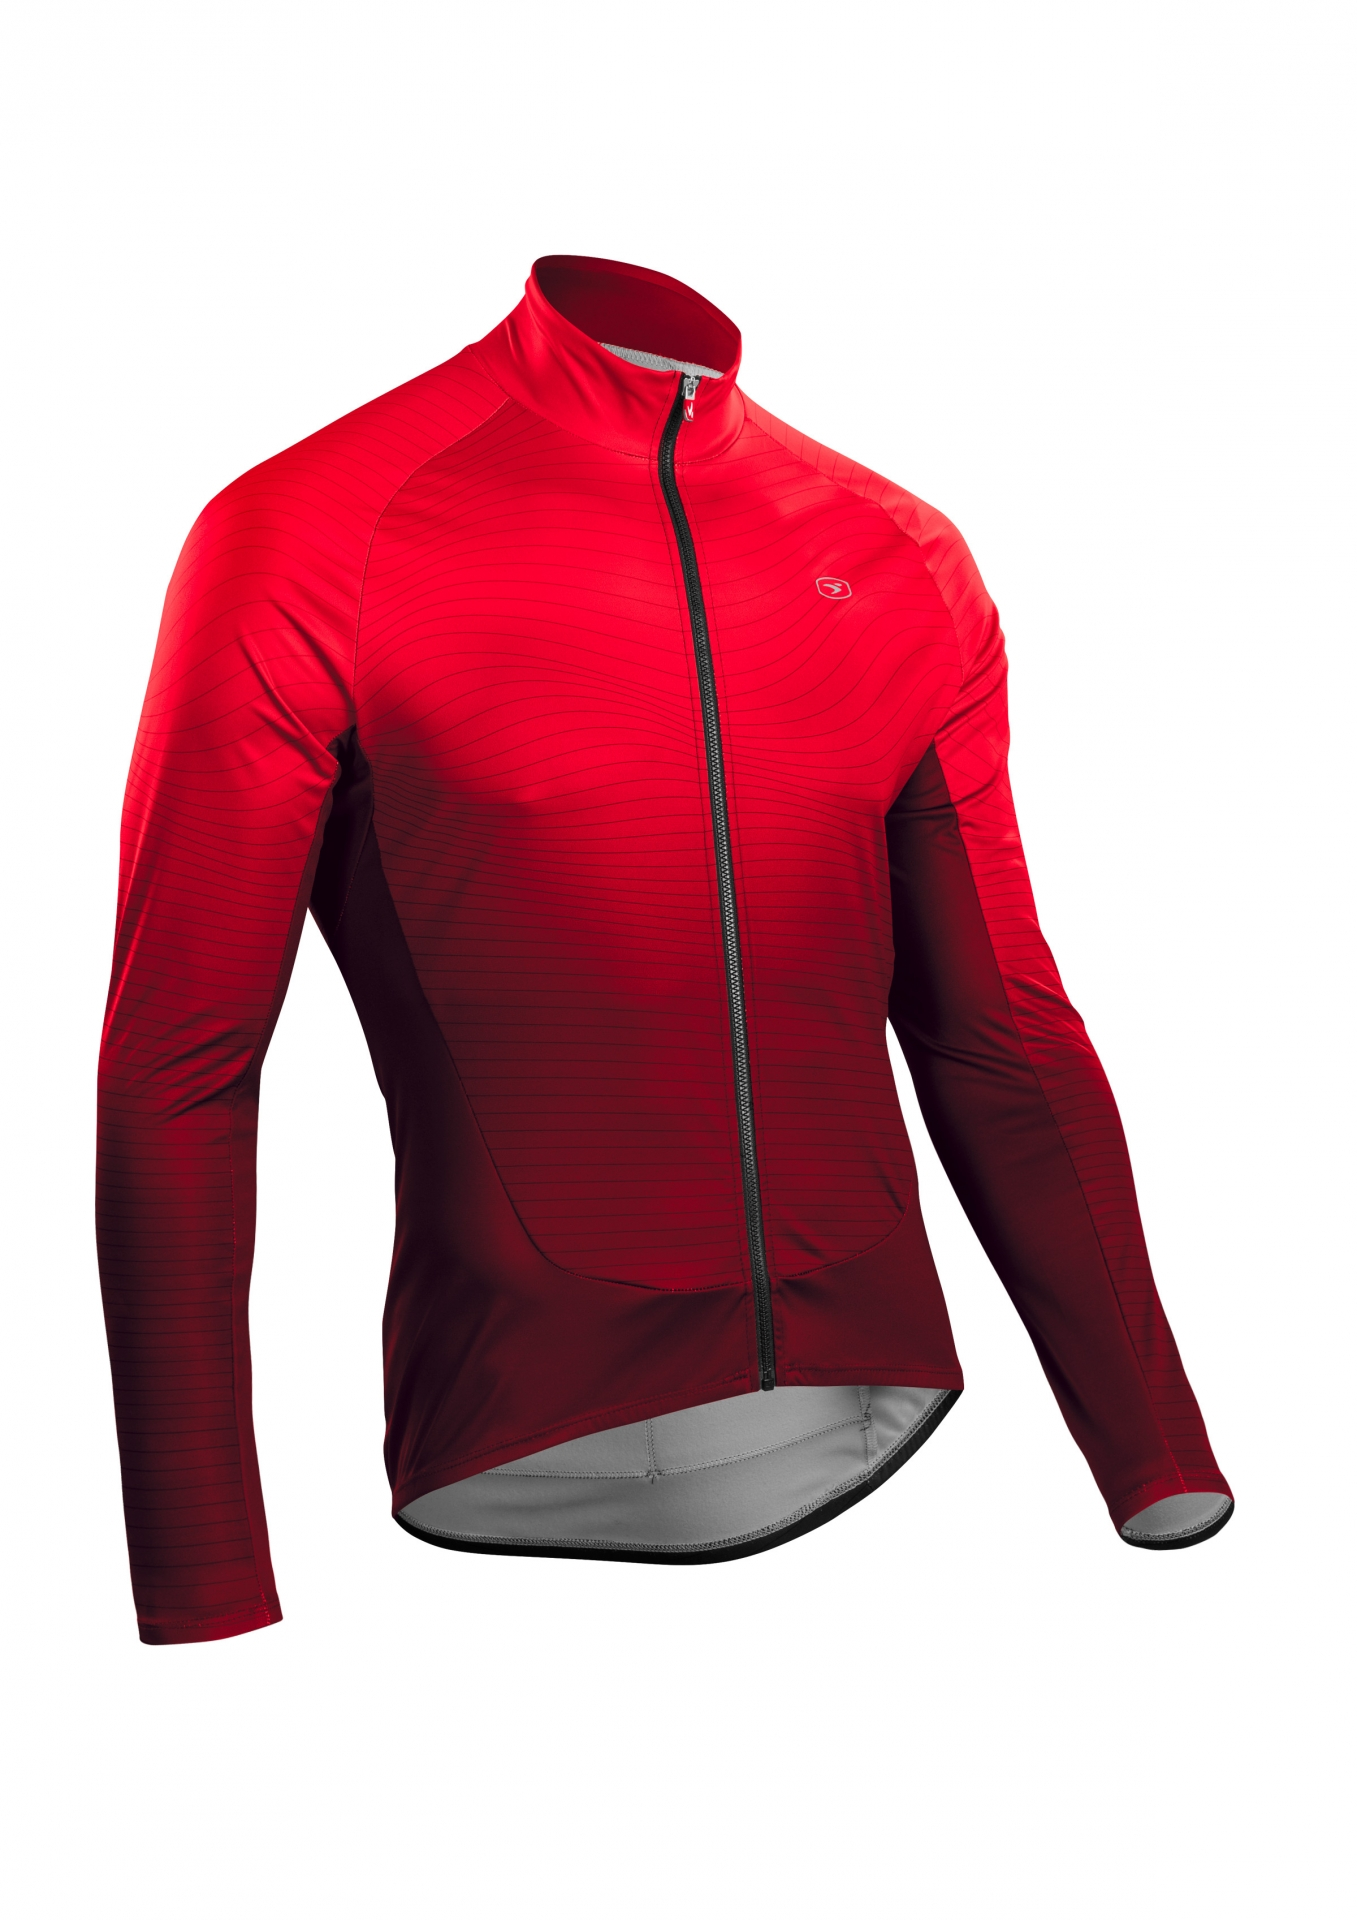 Maillot manches longues Sugoi RS Training Jersey Rouge Chili/Line - L